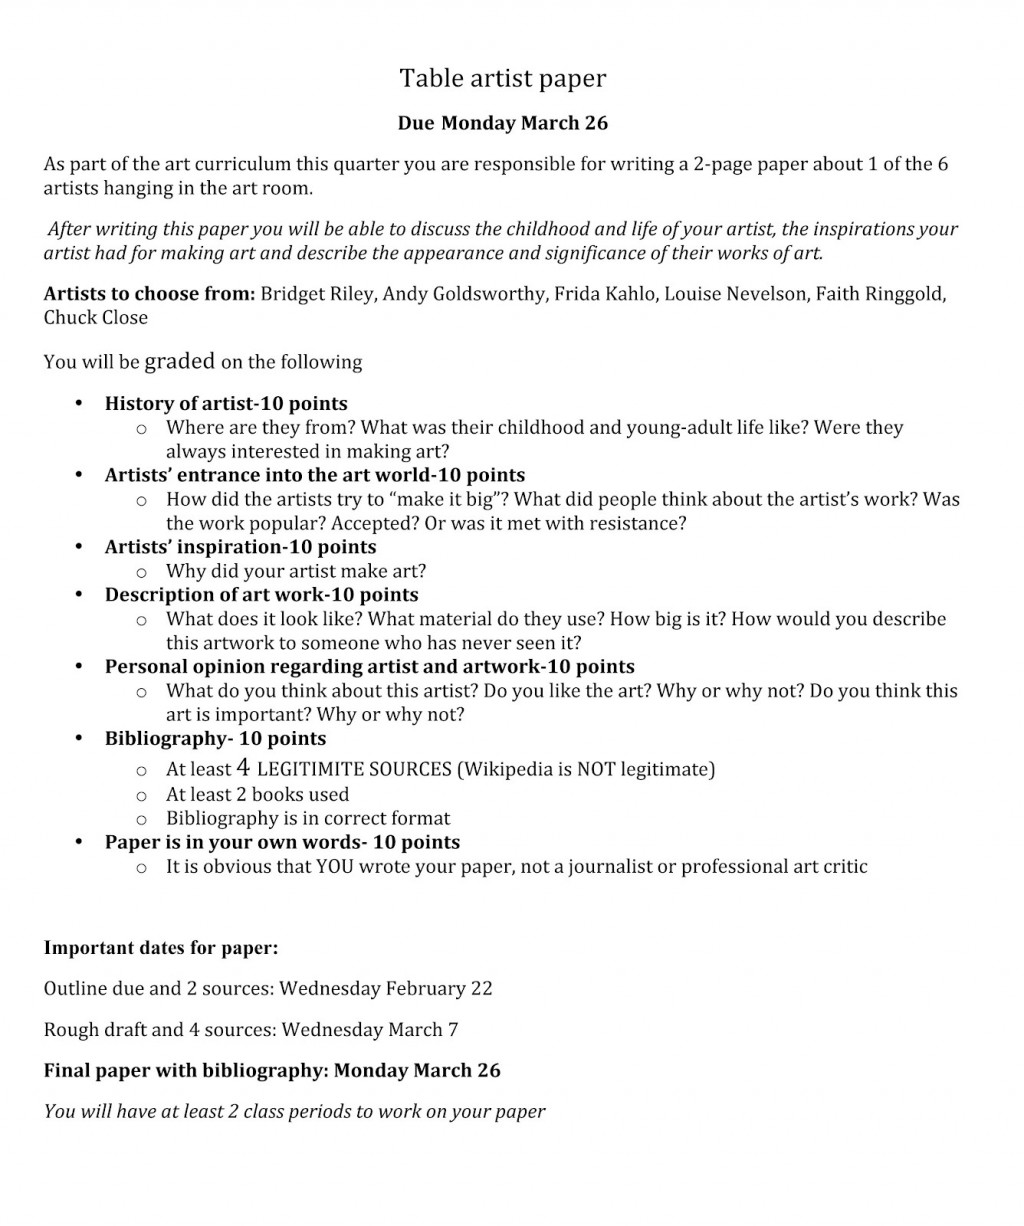 010 Argumentative Research Paper Topics For College Students Fascinating Large